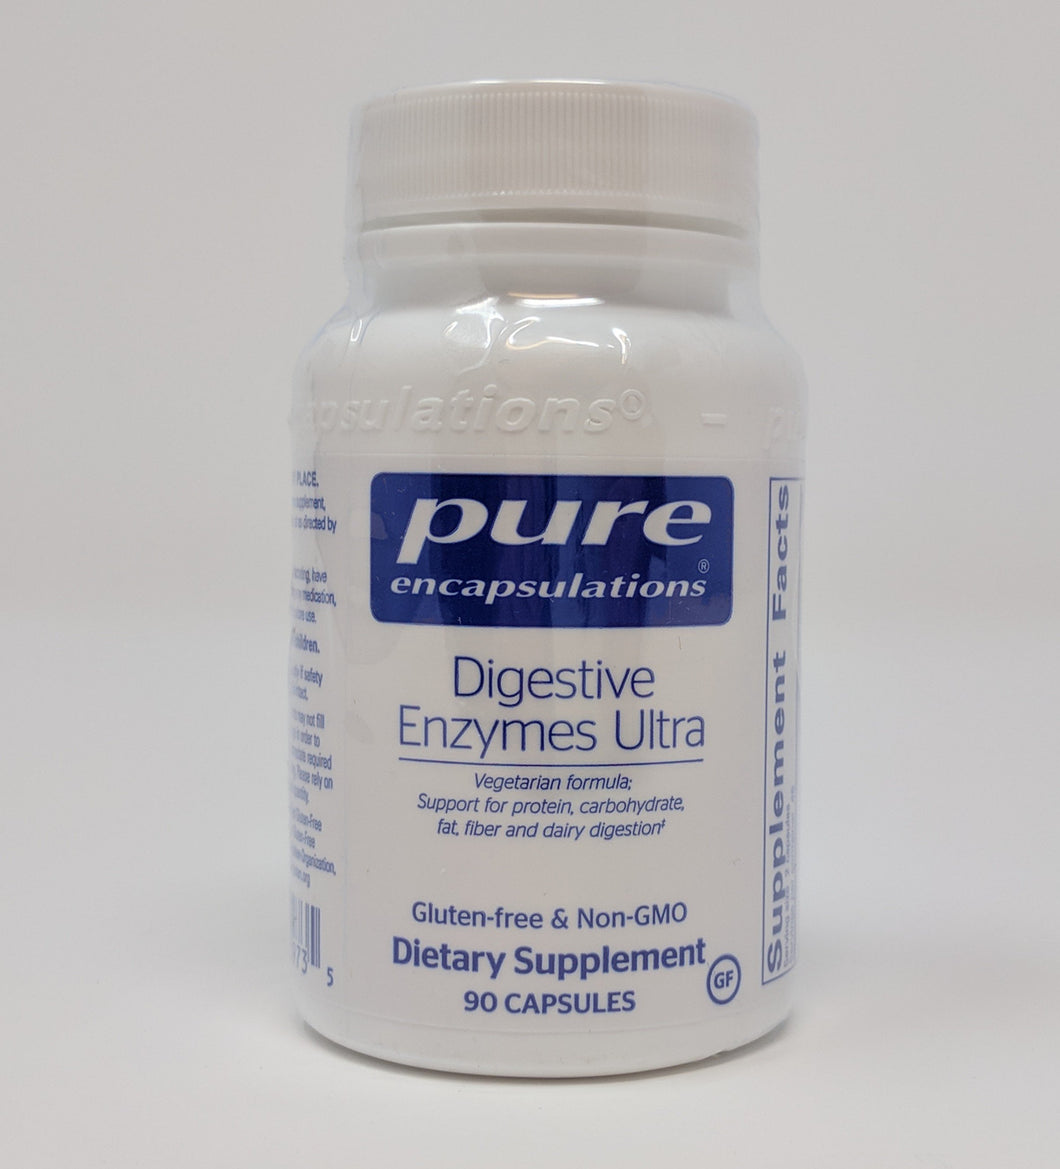 Digestive Enzymes Ultra by Pure Encapsulations 90 Caps. Vegetarian Formula